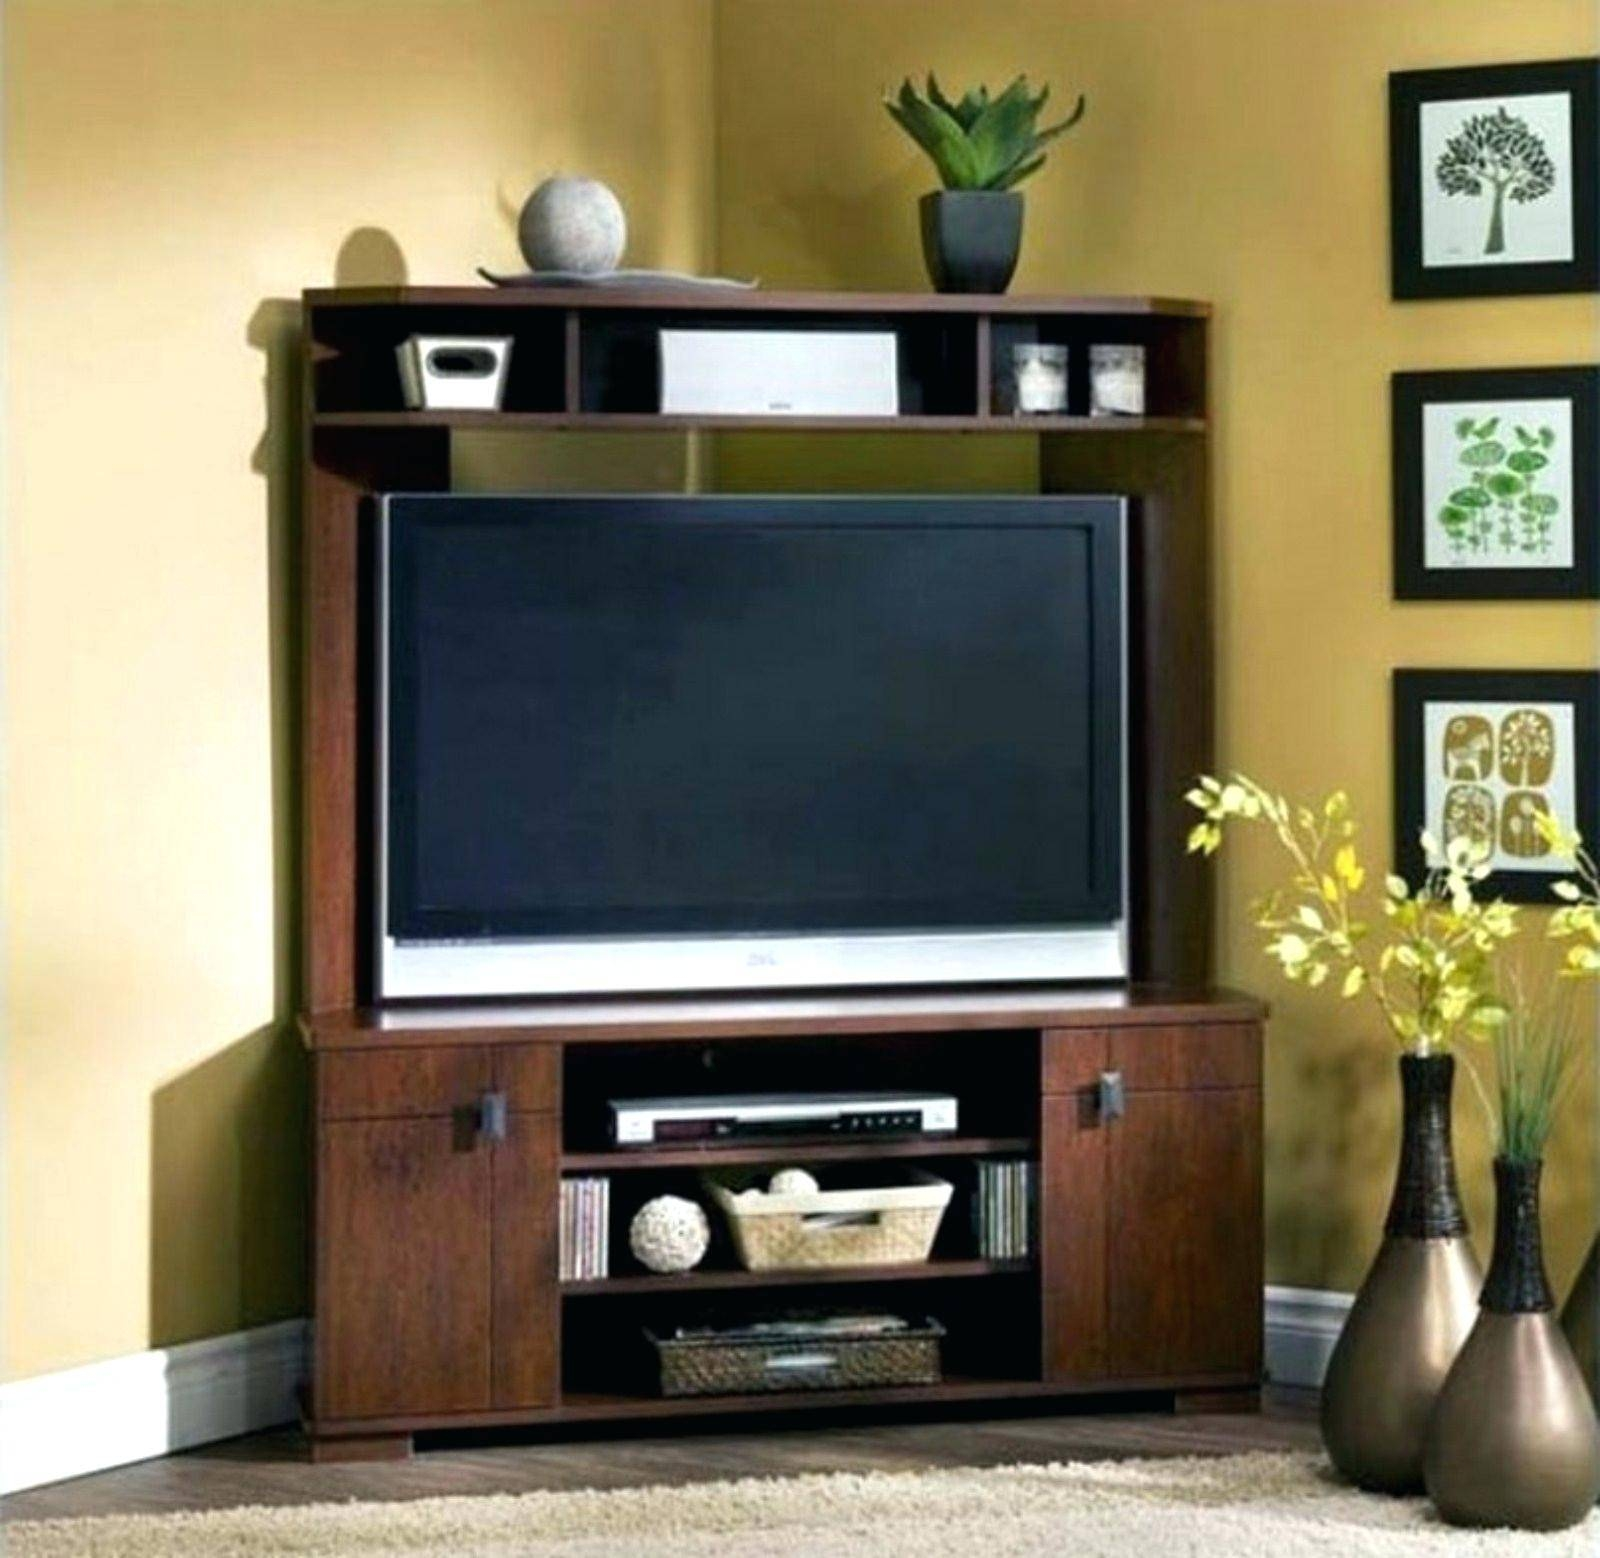 Tv Stand : Corner Tv Console 55 Inch Corner Tv Stand Flat Screen Inside Tv Stands 38 Inches Wide (View 2 of 15)